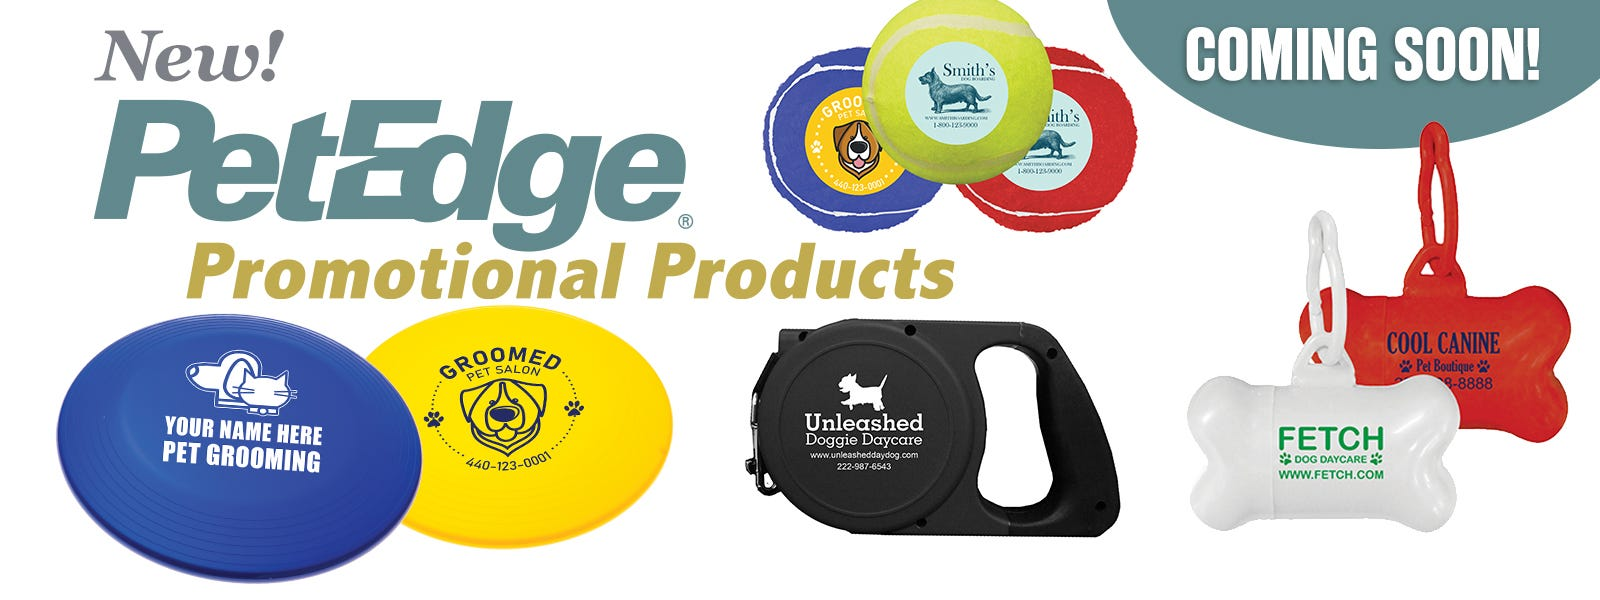 New PetEdge Promotional Products coming soon!